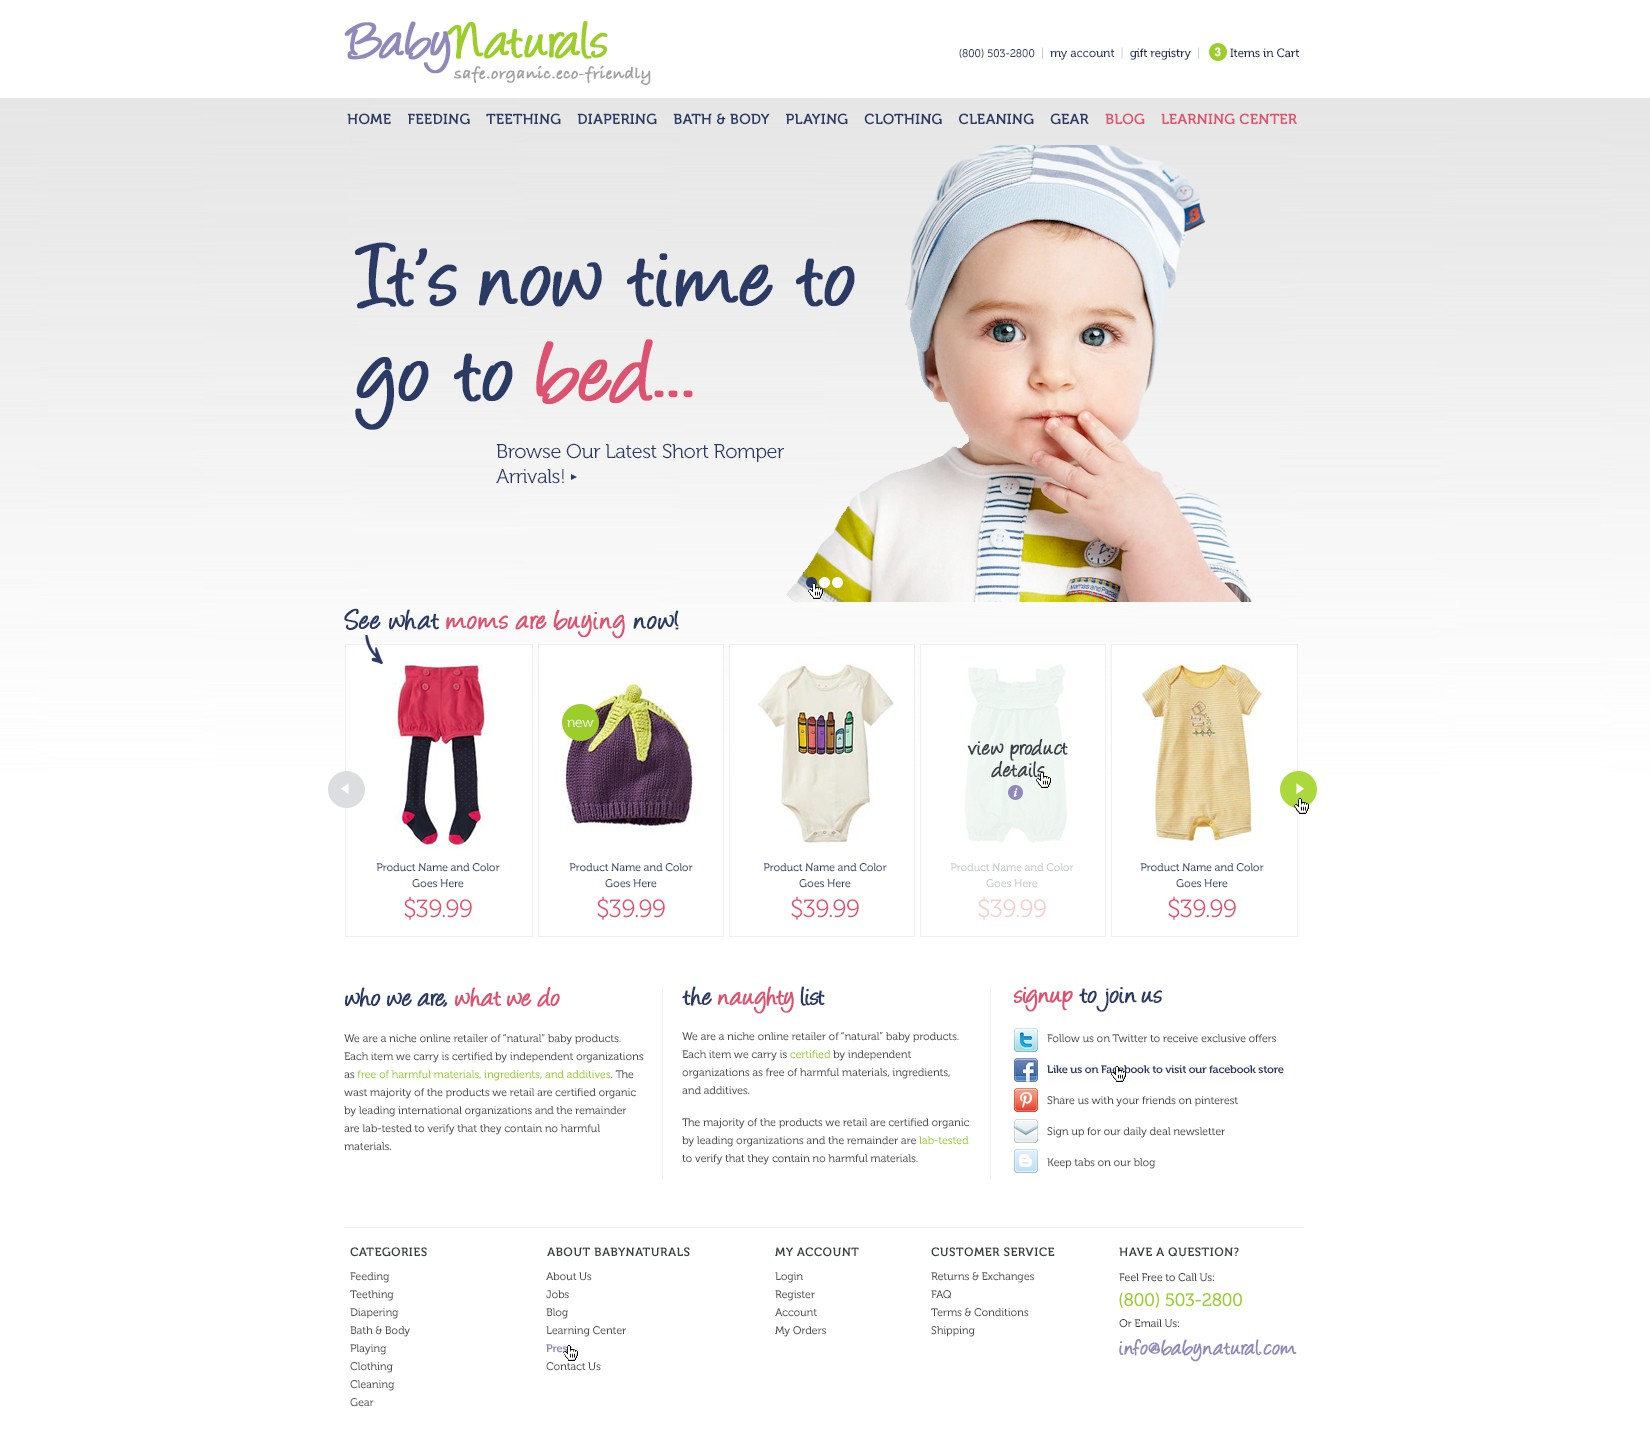 New website design for baby products website